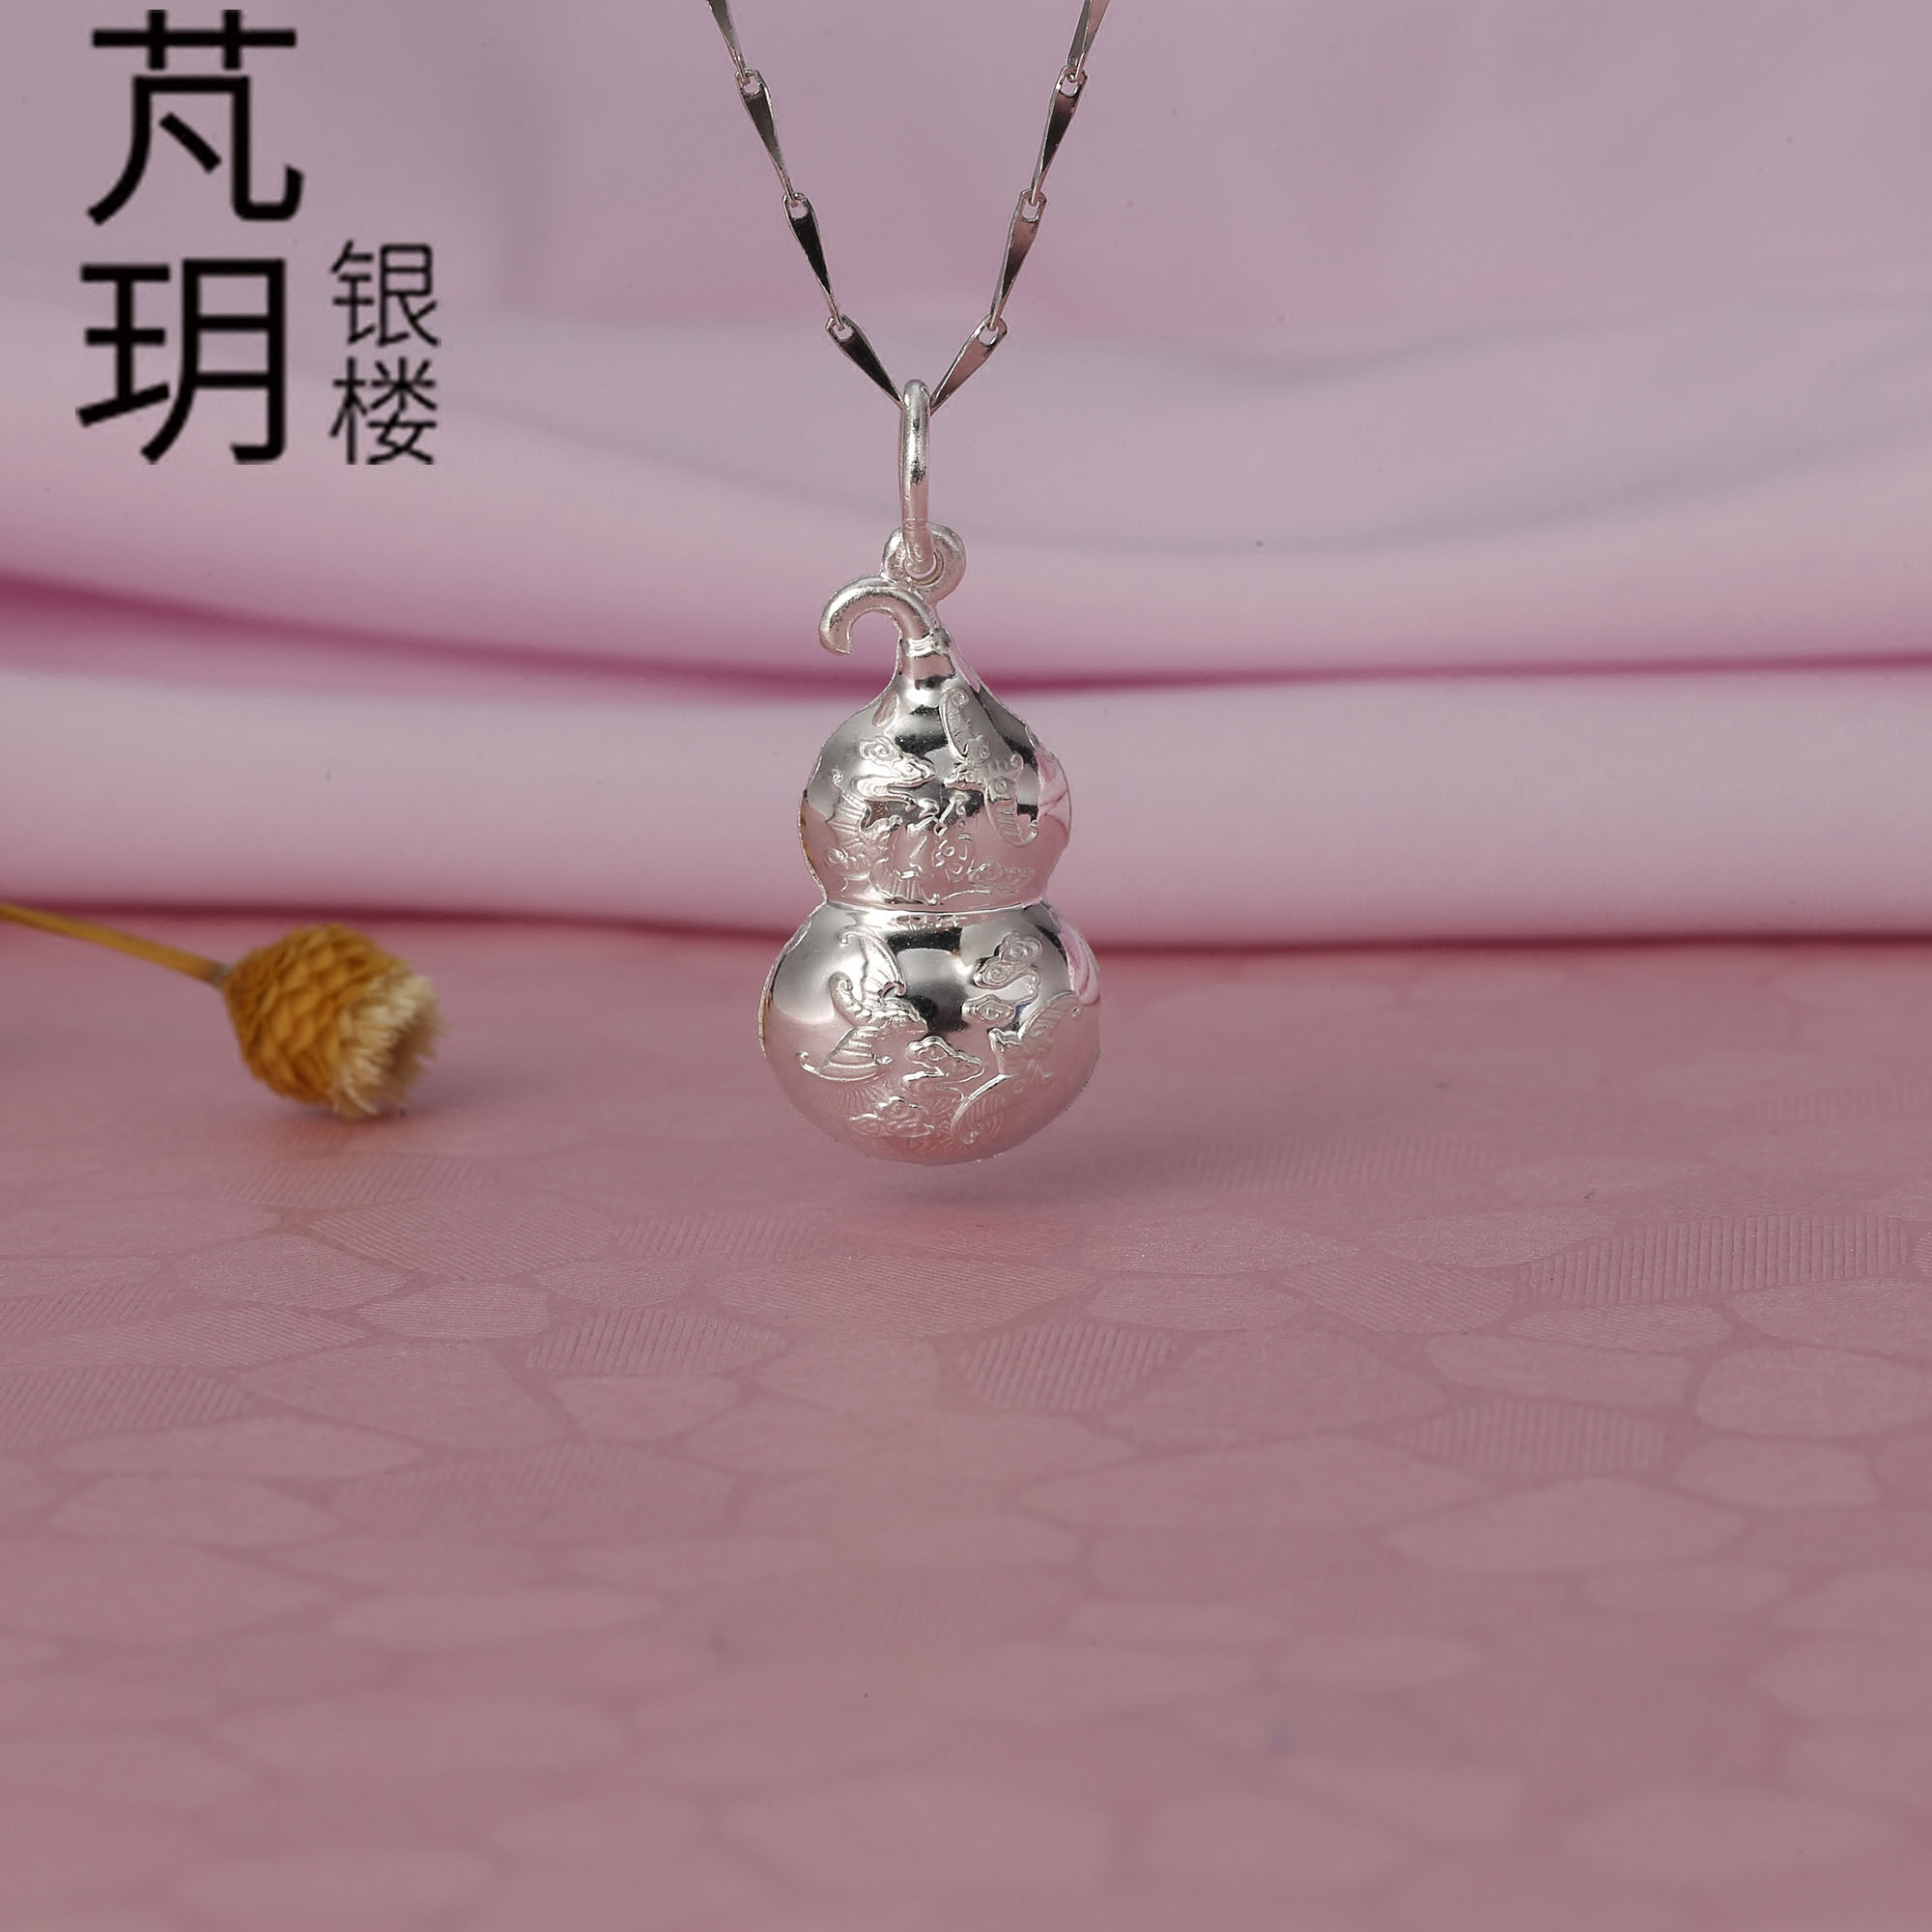 Pengyue silver building counter authentic 999 full silver necklace round gourd seven Sterling Silver three-dimensional fuludo Pendant